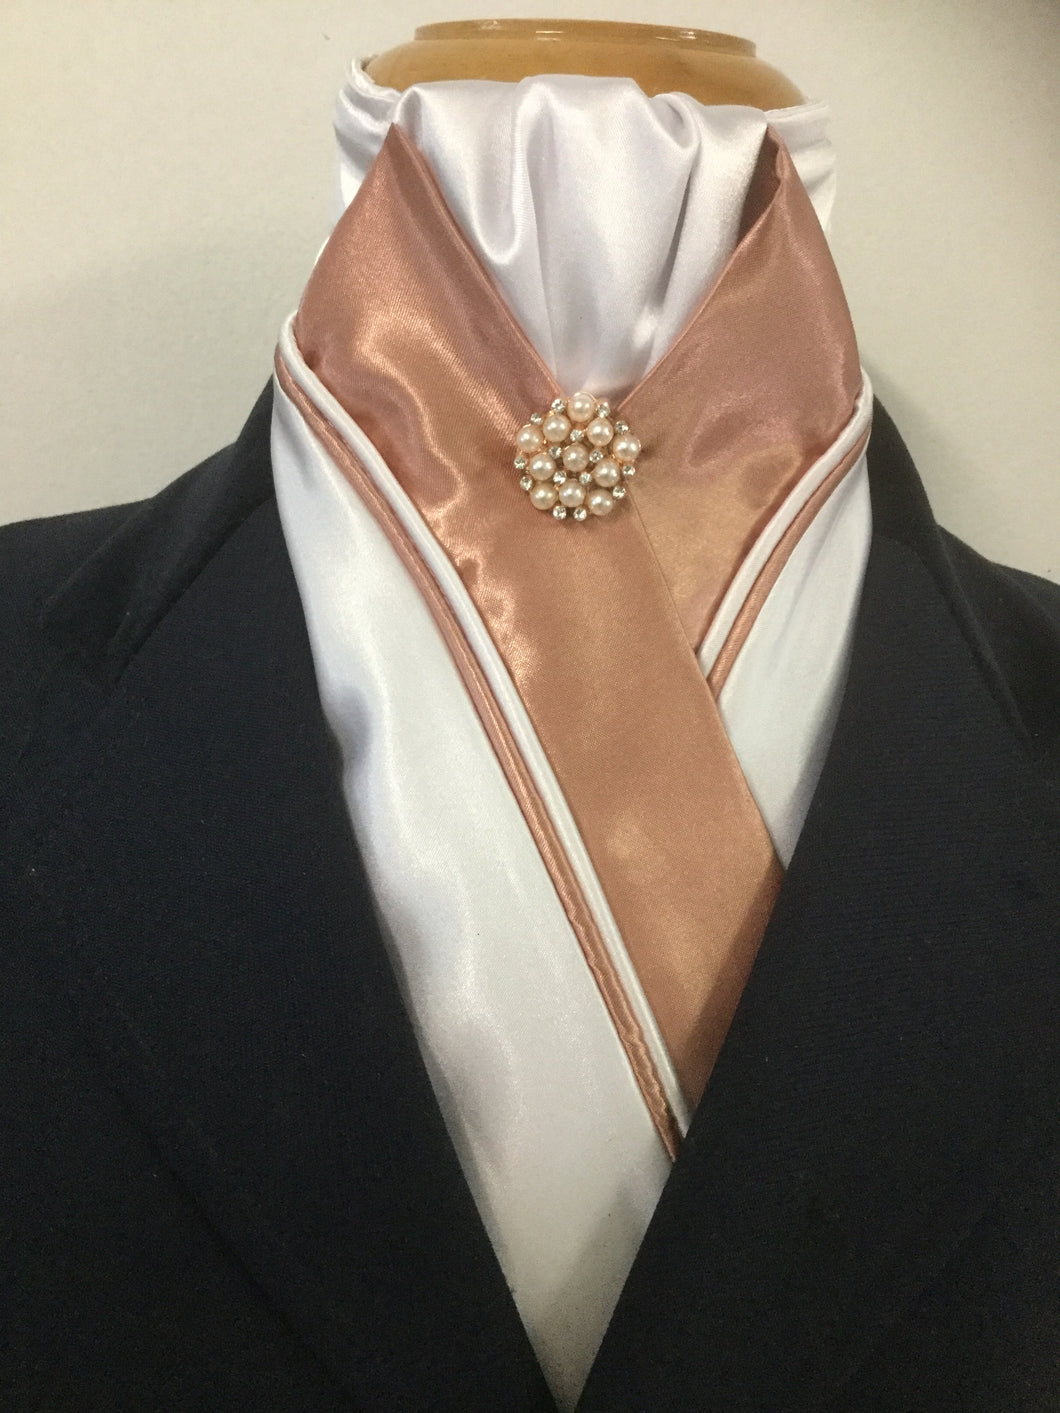 HHD 'Grace' Custom White & Rose Gold Dressage Stock Tie with a Pearl  Rhinestone Pin